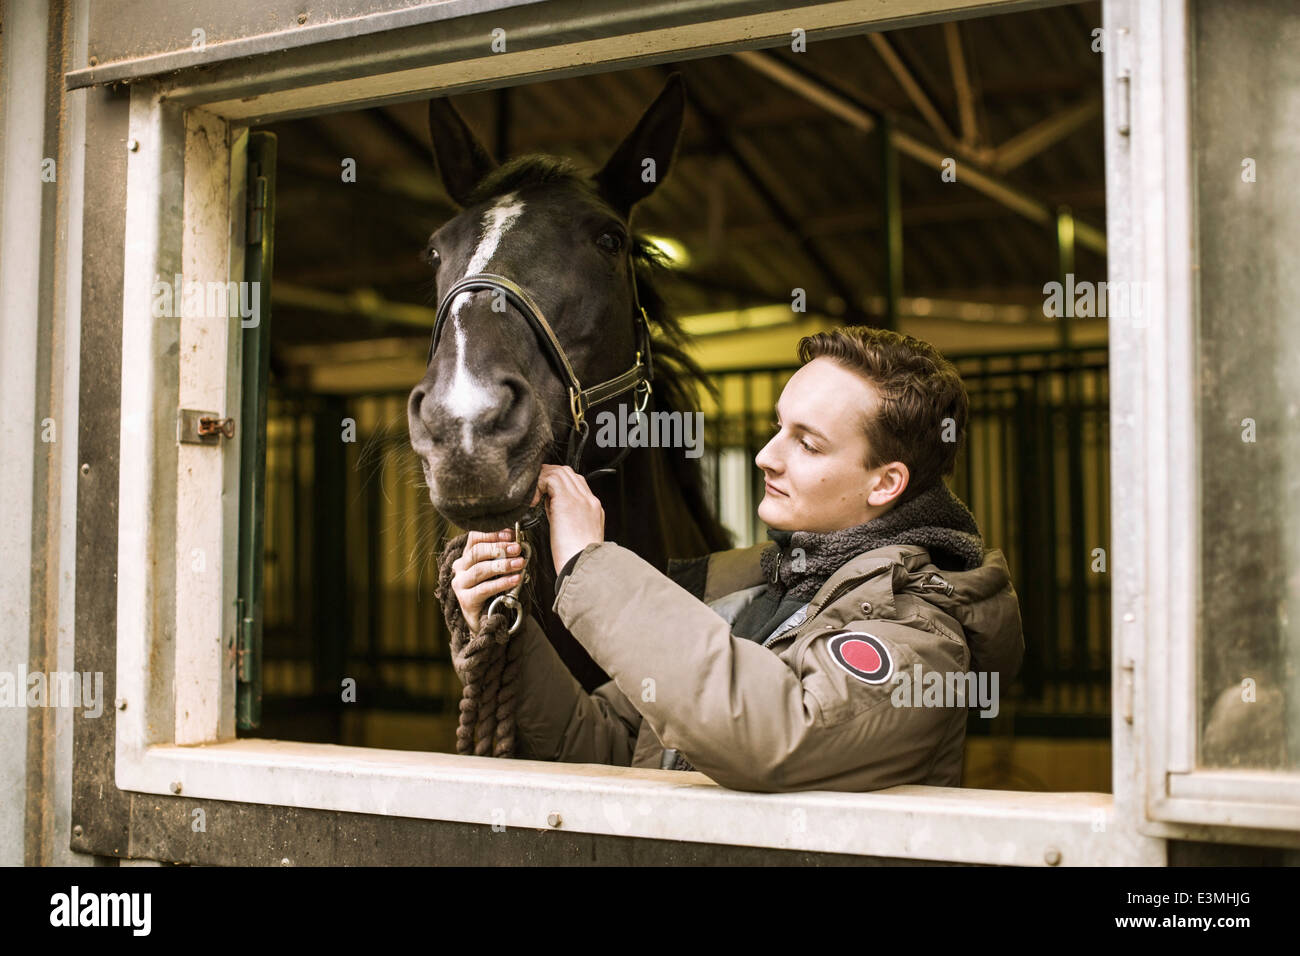 Young man with horse in stable - Stock Image